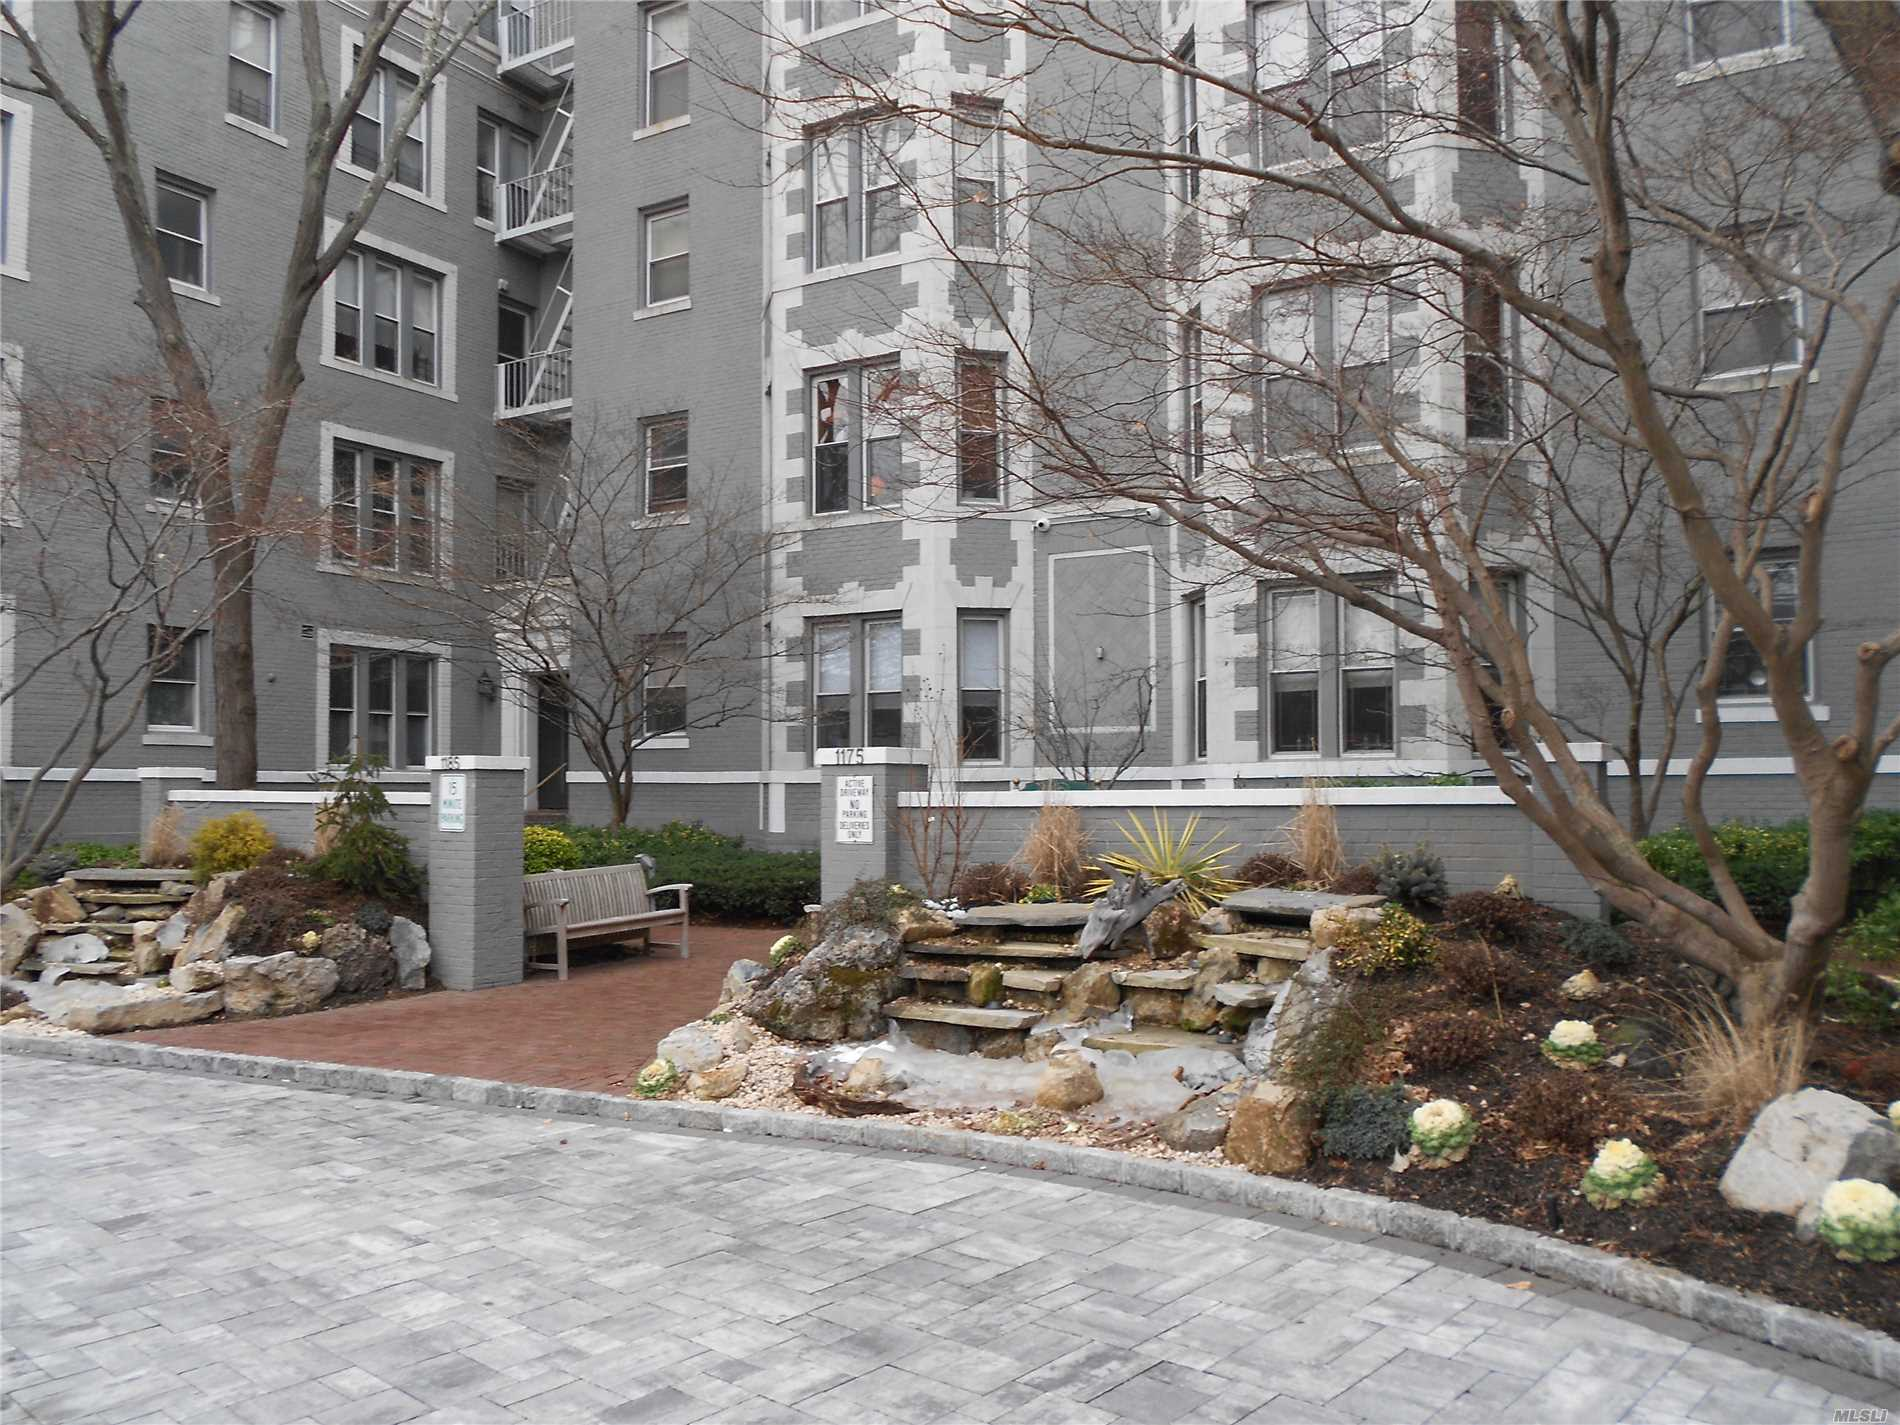 Immaculate & Well Maintained 1 Bedroom On The 1st Floor Of The Prestigious Gray Building With Updated Eat-In Kitchen, Living Room/Dining Room Combo & A Large Bedroom With Abundance Of Closets. High Ceilings, Wood Floors & Cac. Storage And Laundry On-Site. Street Parking Plus Adjacent Municipal Lot. A Must See!!!